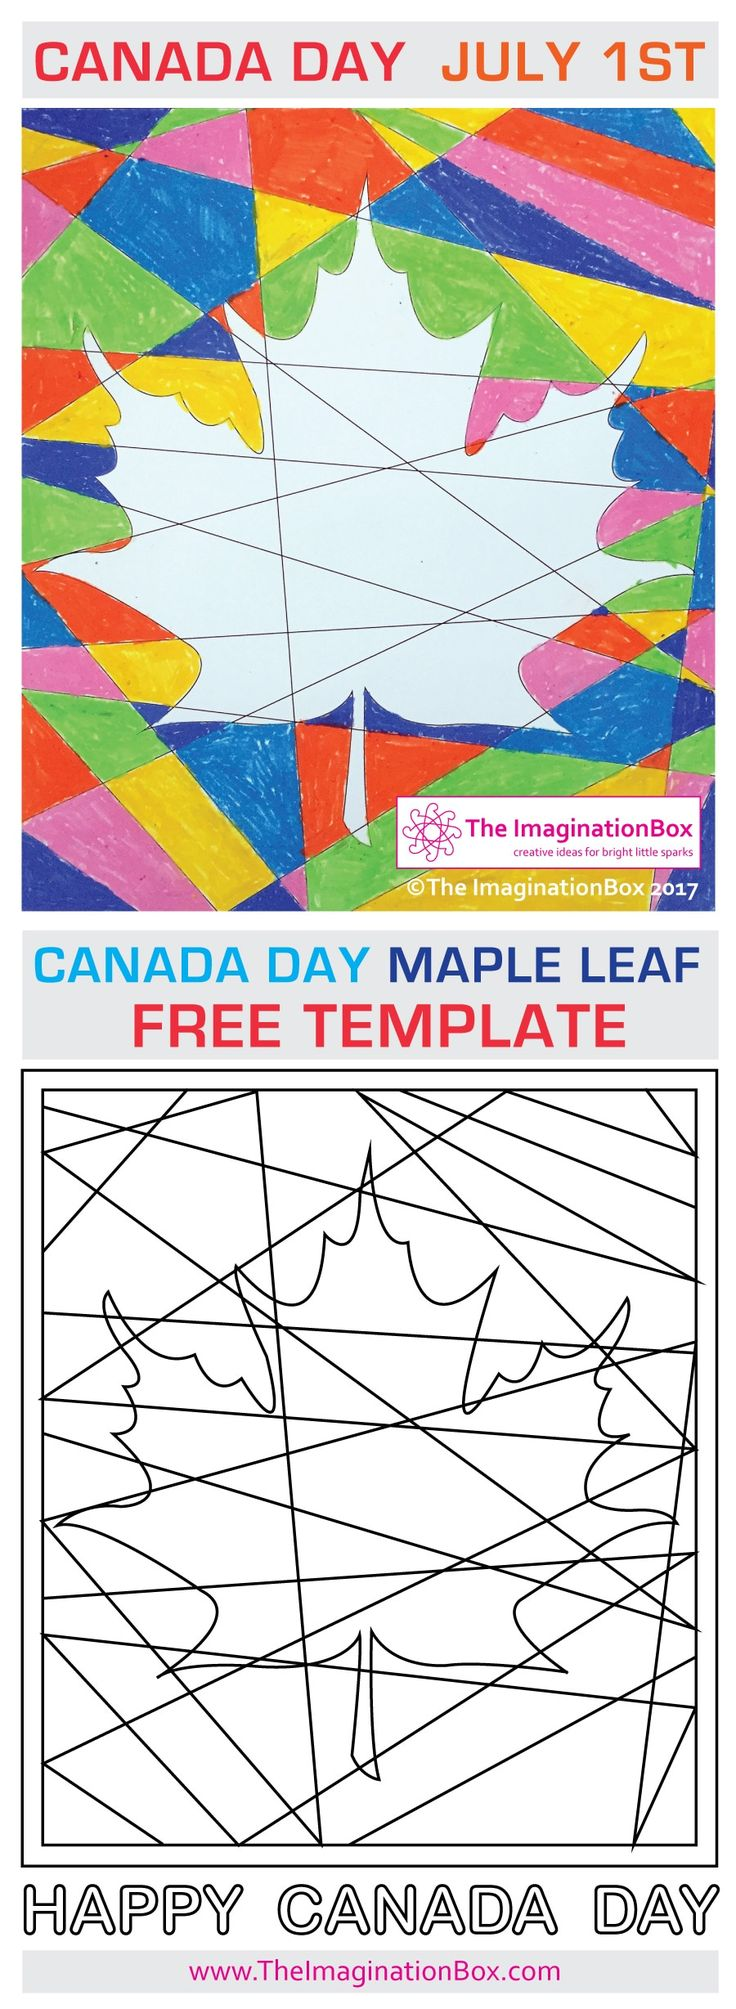 The Imagination Box FREE Celebrate Canada Day abstract Maple Leaf art activity for kids. Canada Day is July 1st. Use this download activity pack at home, school or summercamp